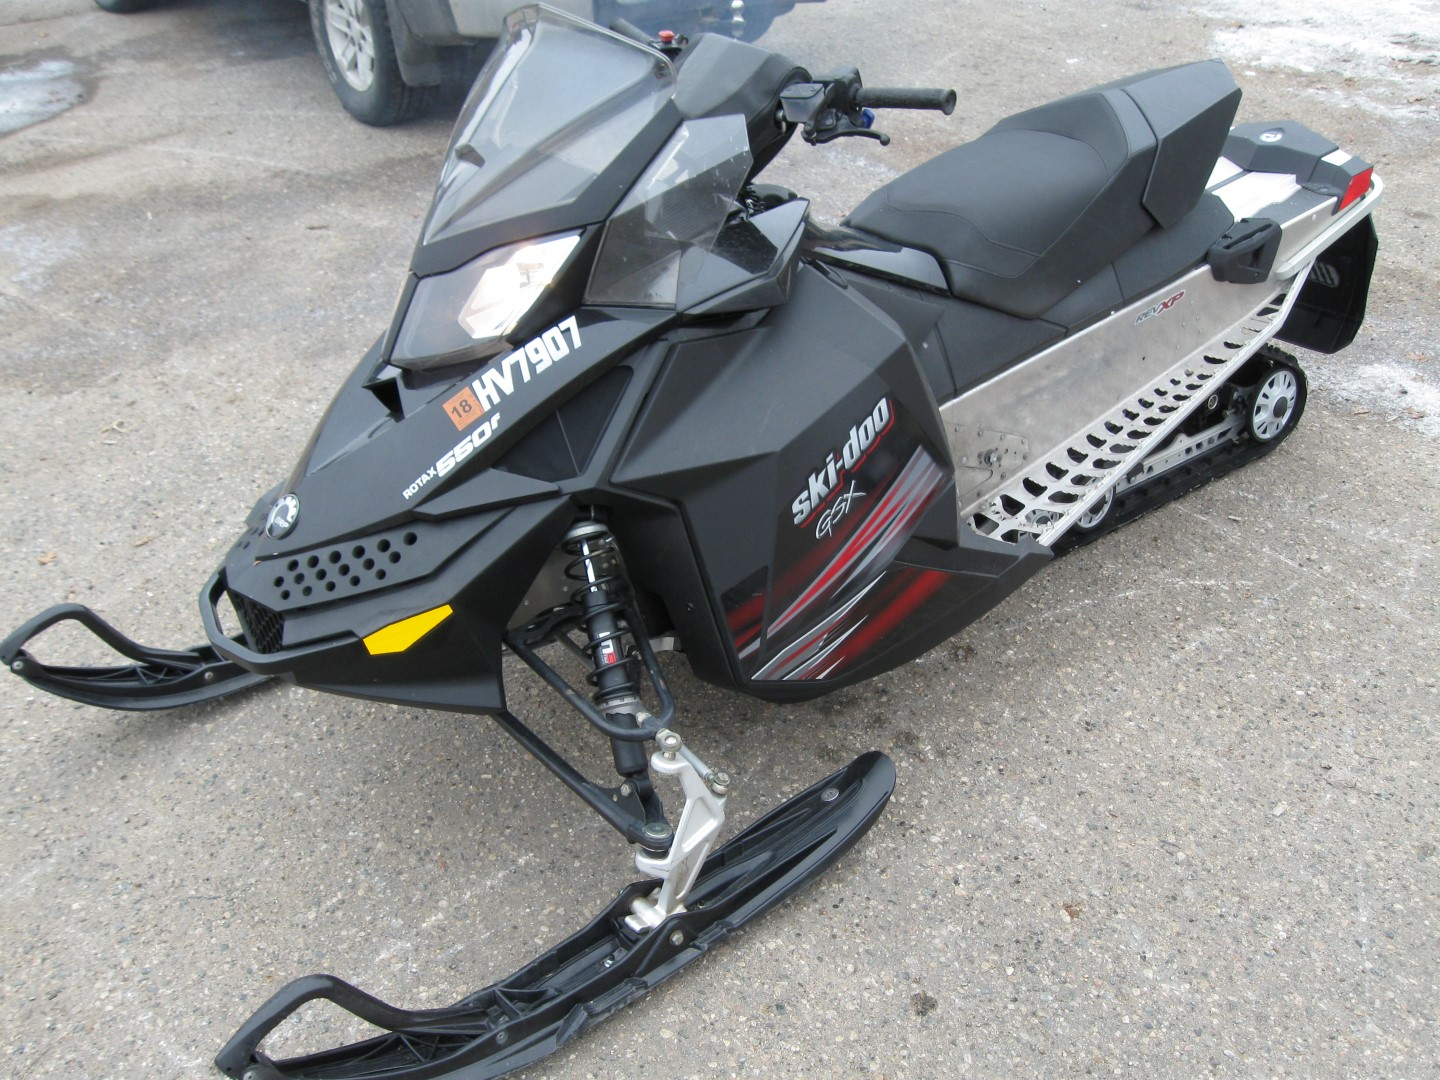 Used Can Am Atvs For Sale Bowling Green Ky >> Used Atvs Utvs Motorcycles Personal Watercraft And | Autos Post